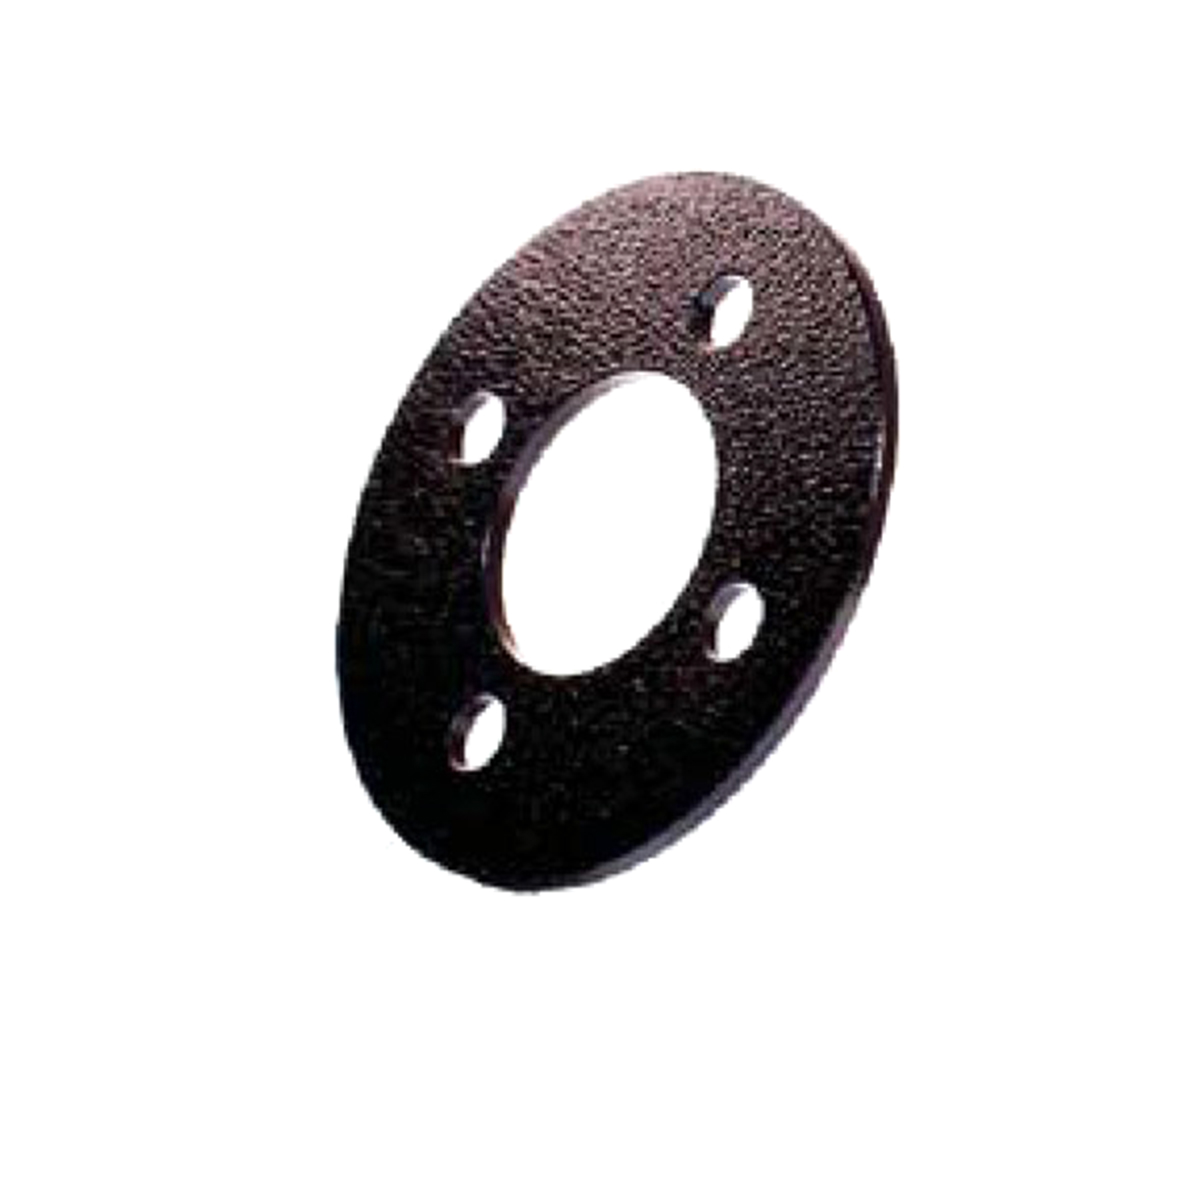 400389 Dixie Chopper Adapter Plate